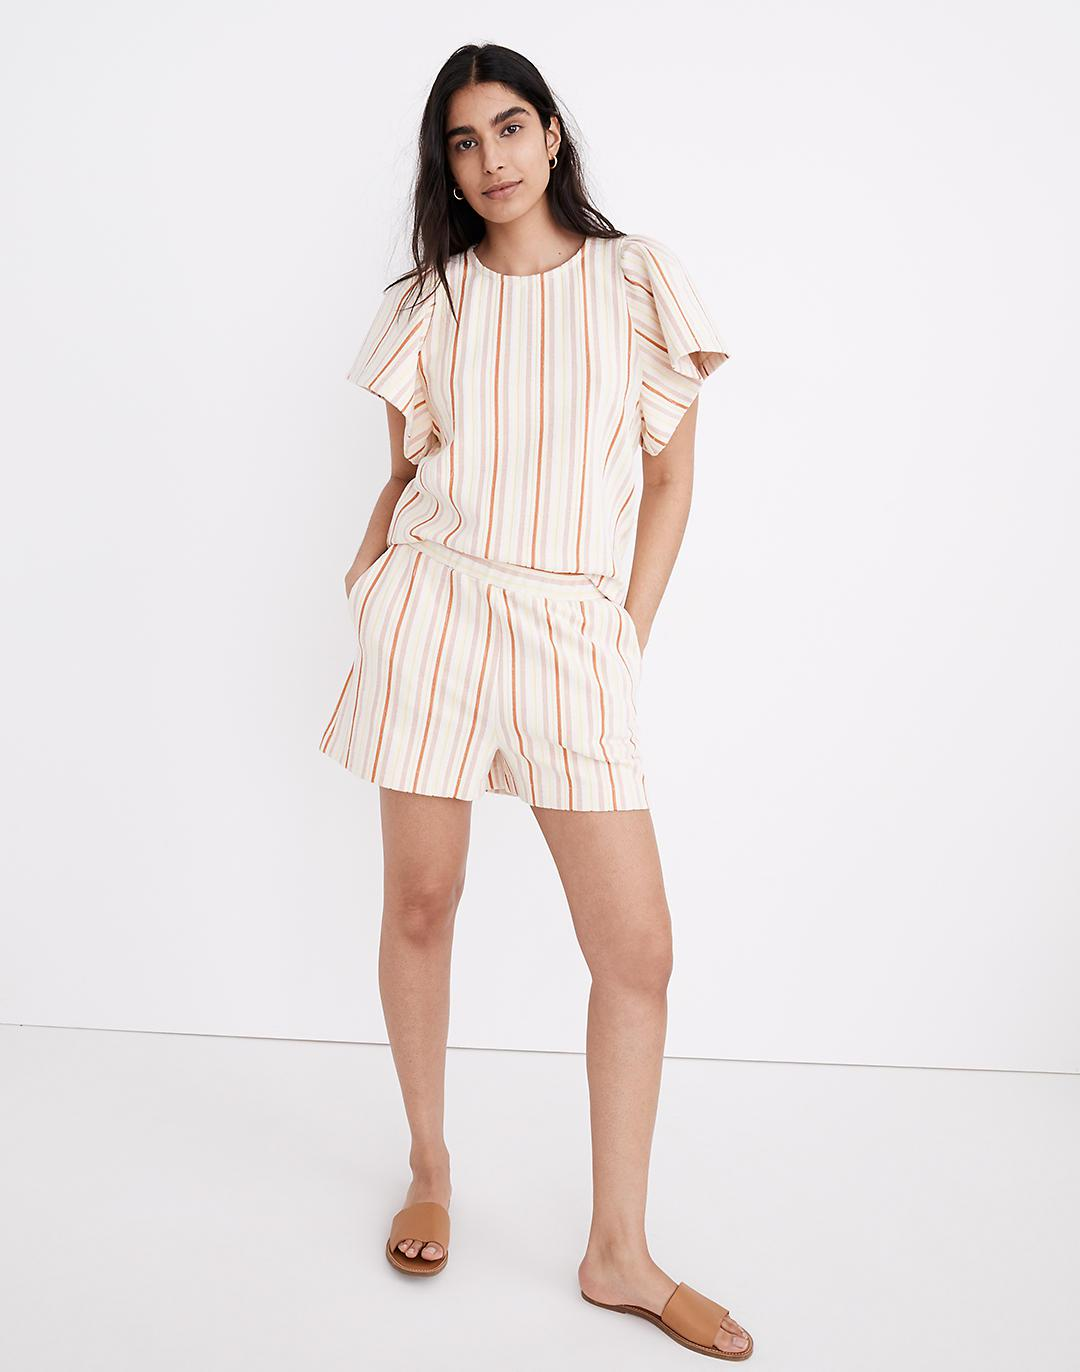 Textural Knit High-Rise Pleated Shorts in Stripe 0